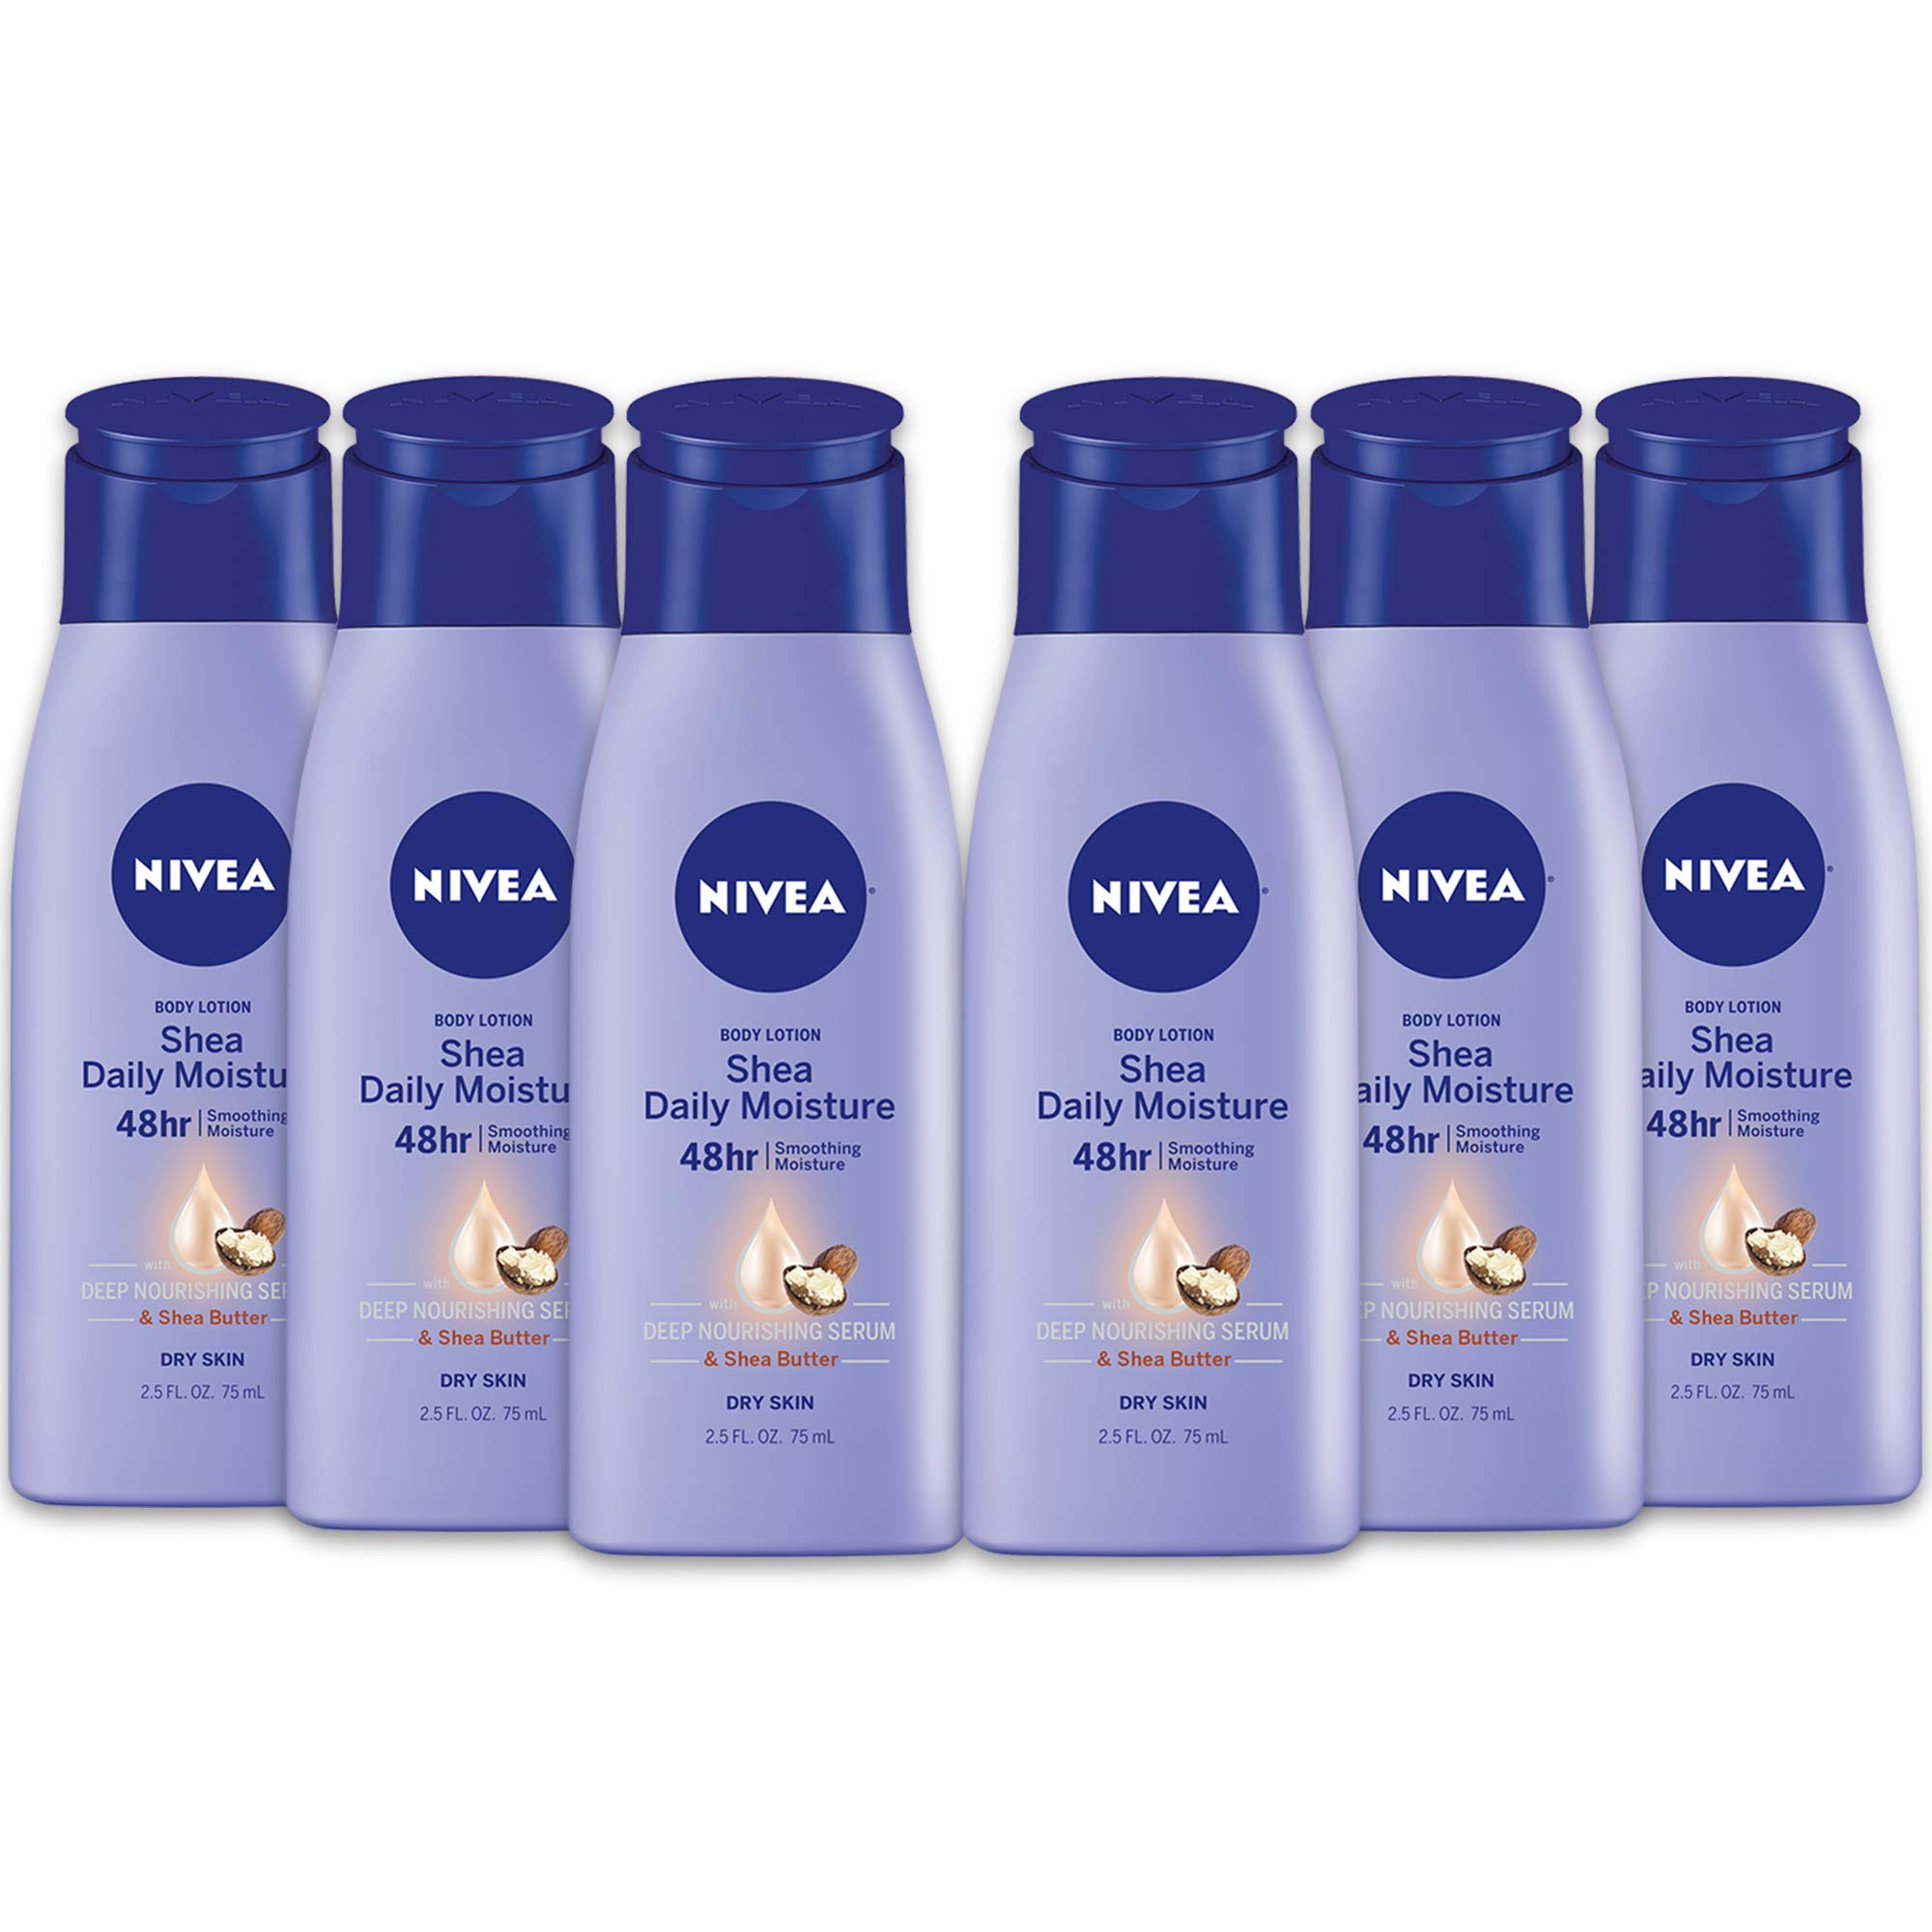 NIVEA Shea Daily Moisture Body Lotion - 48 Hour Moisture For Dry Skin - 2.5 oz. Bottle (Pack of 6) by Nivea